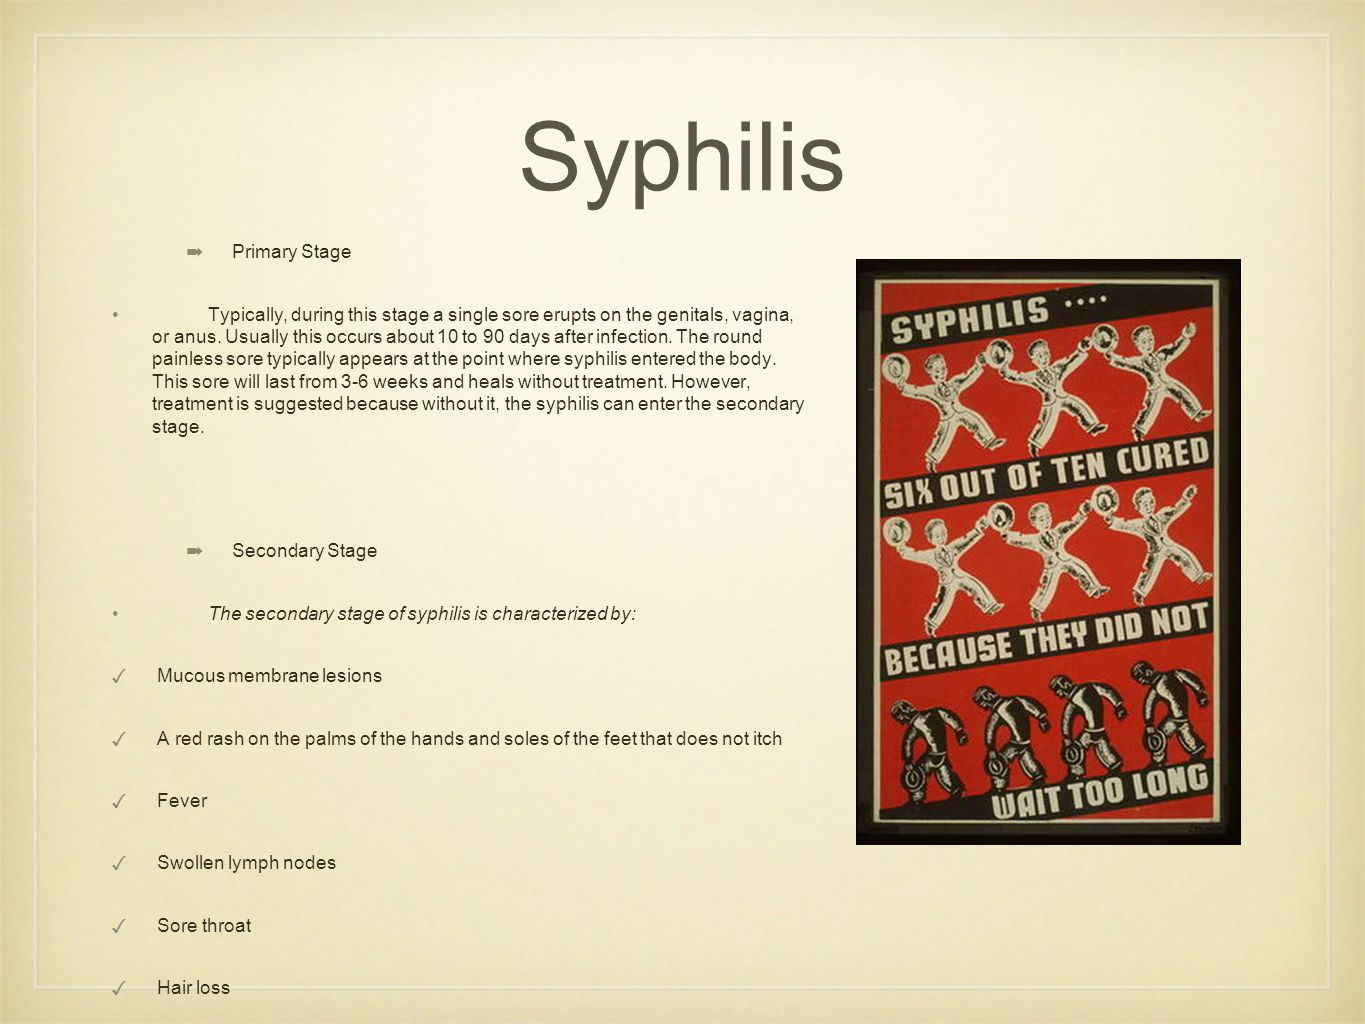 Syphilis Primary Stage